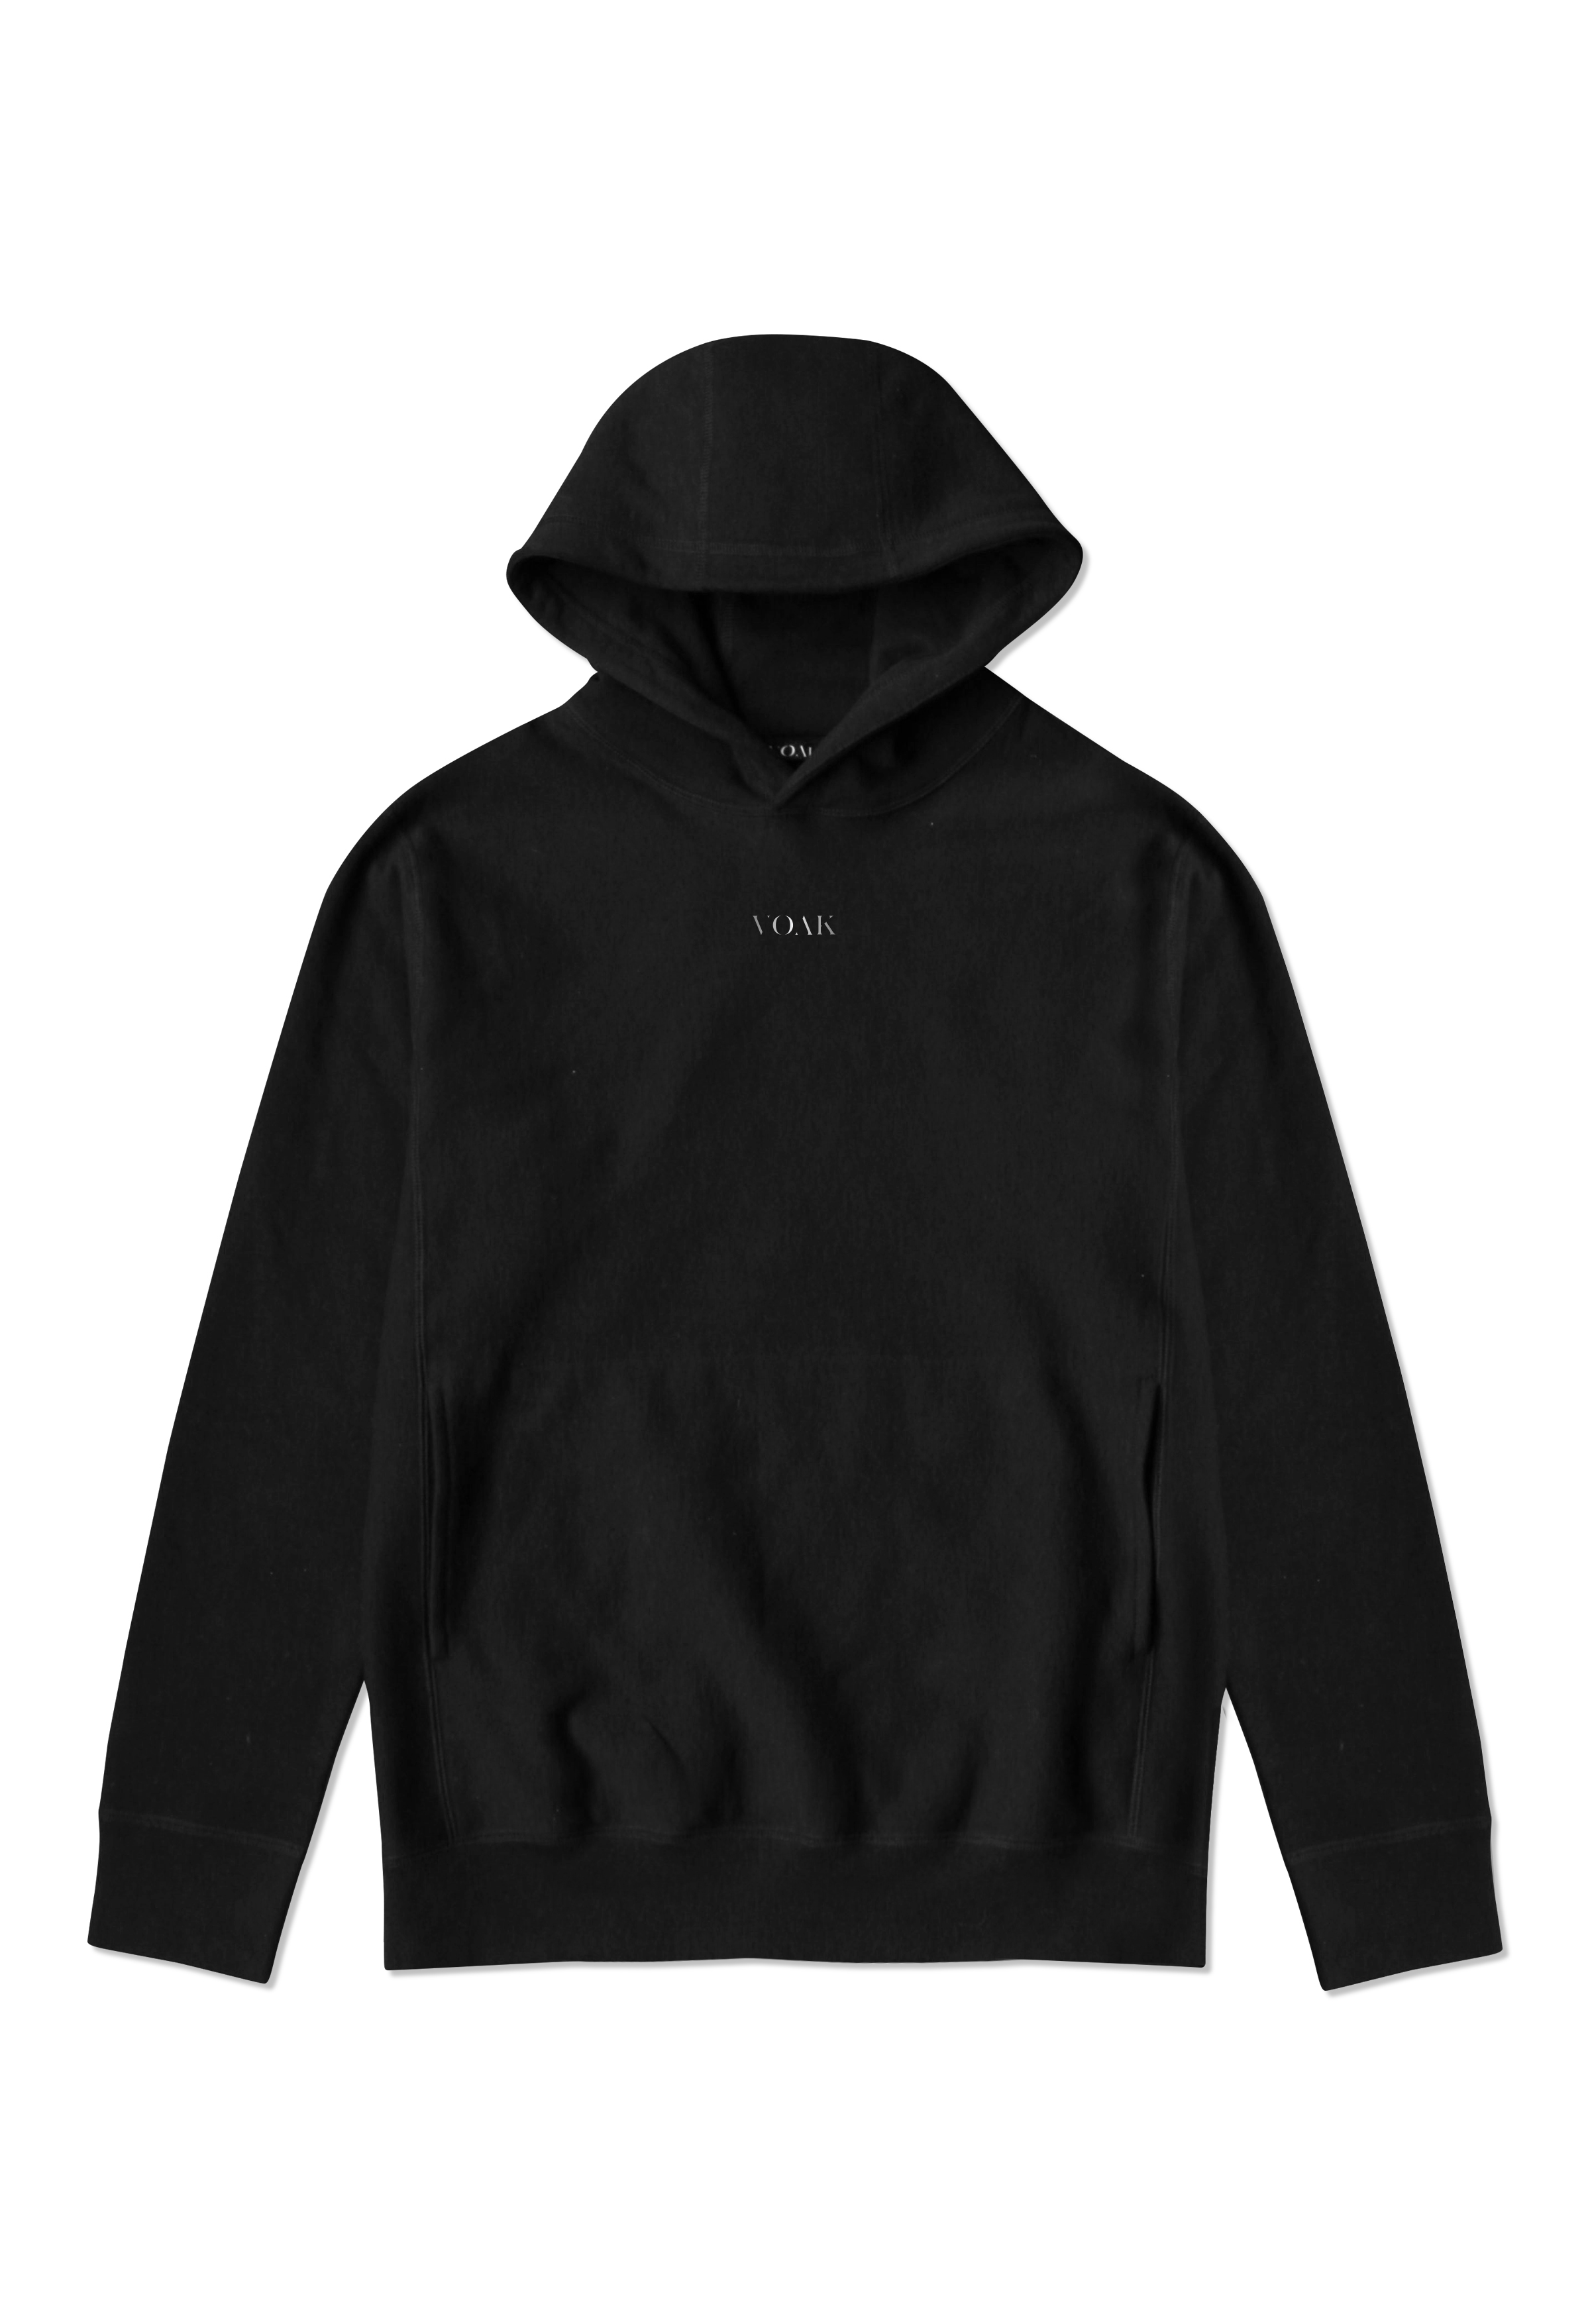 3M Signature Conference Pullover Hood Black